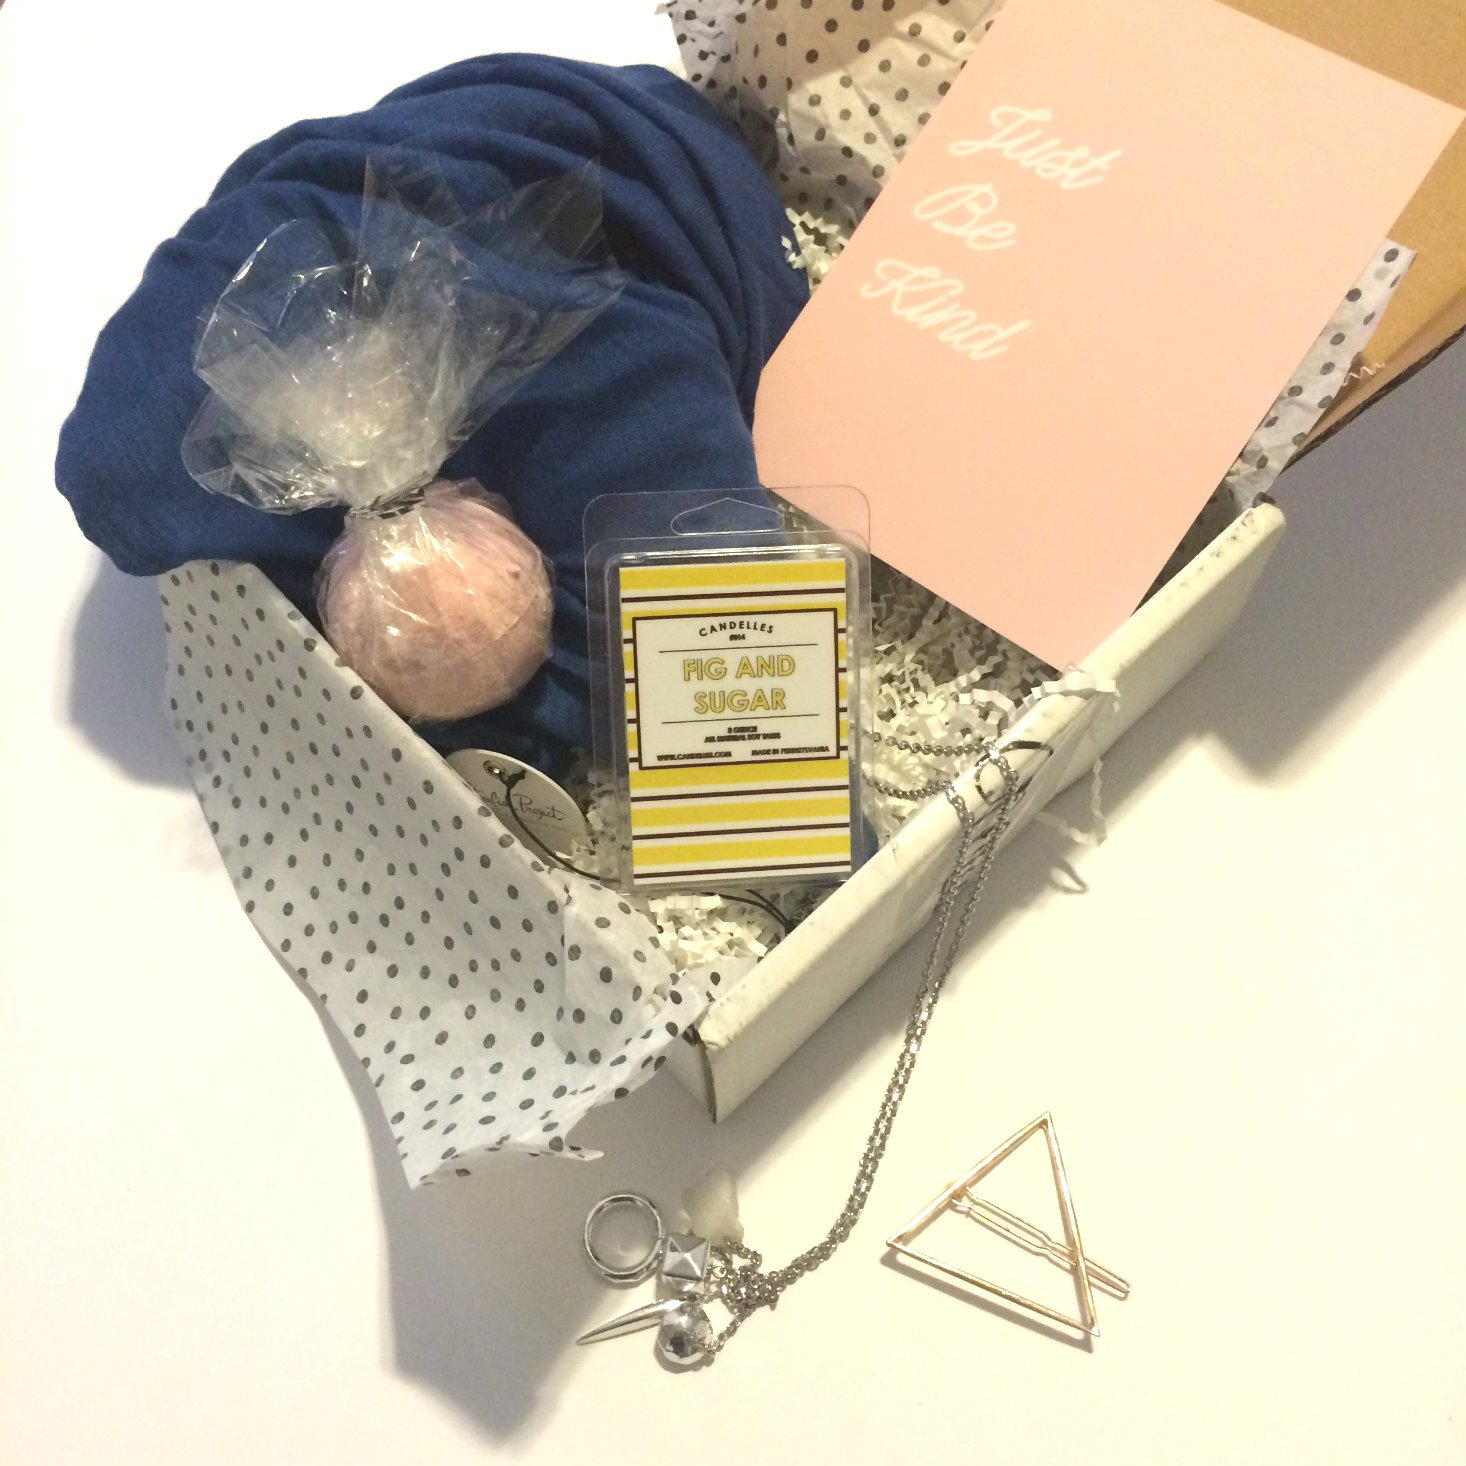 What's inside a MissionCute box? Read our review of the August 2016 box to find out!